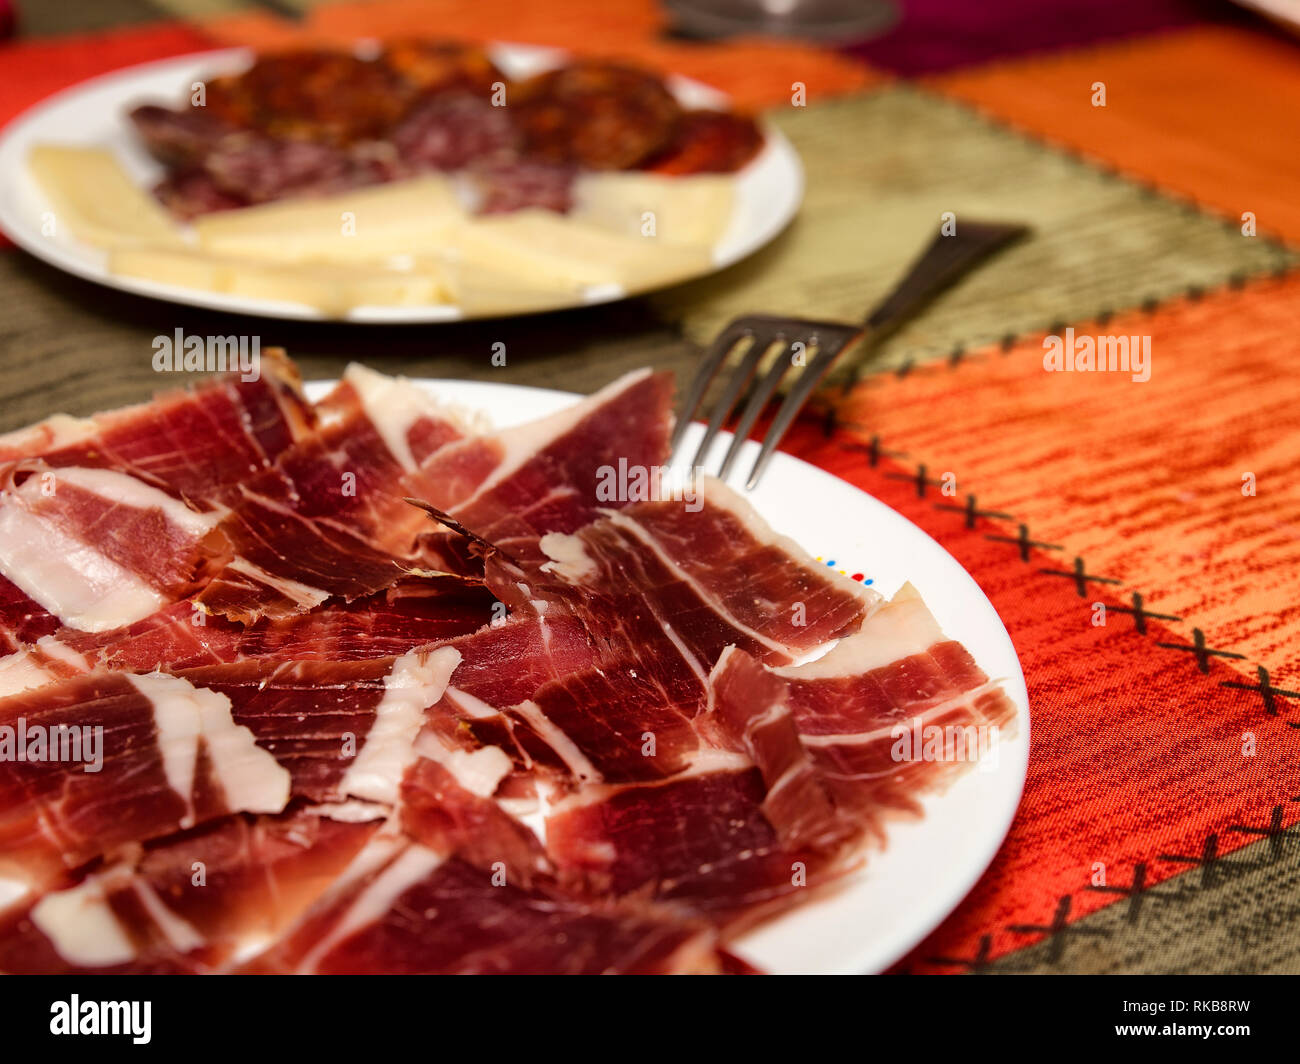 typical plate with cured spanish serrano ham - Stock Image